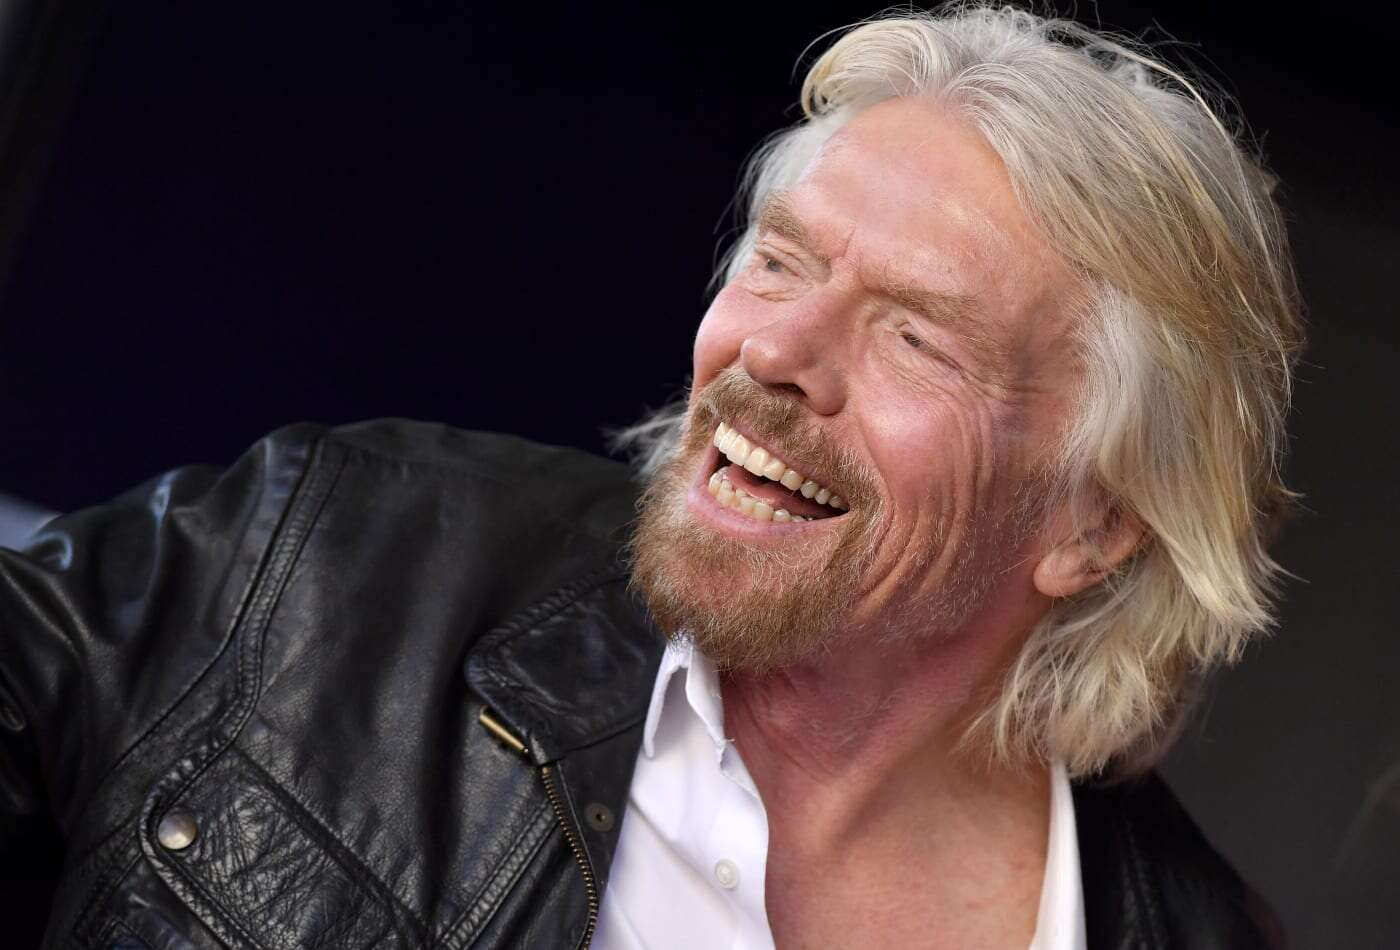 Richard Branson's Lessons for Success